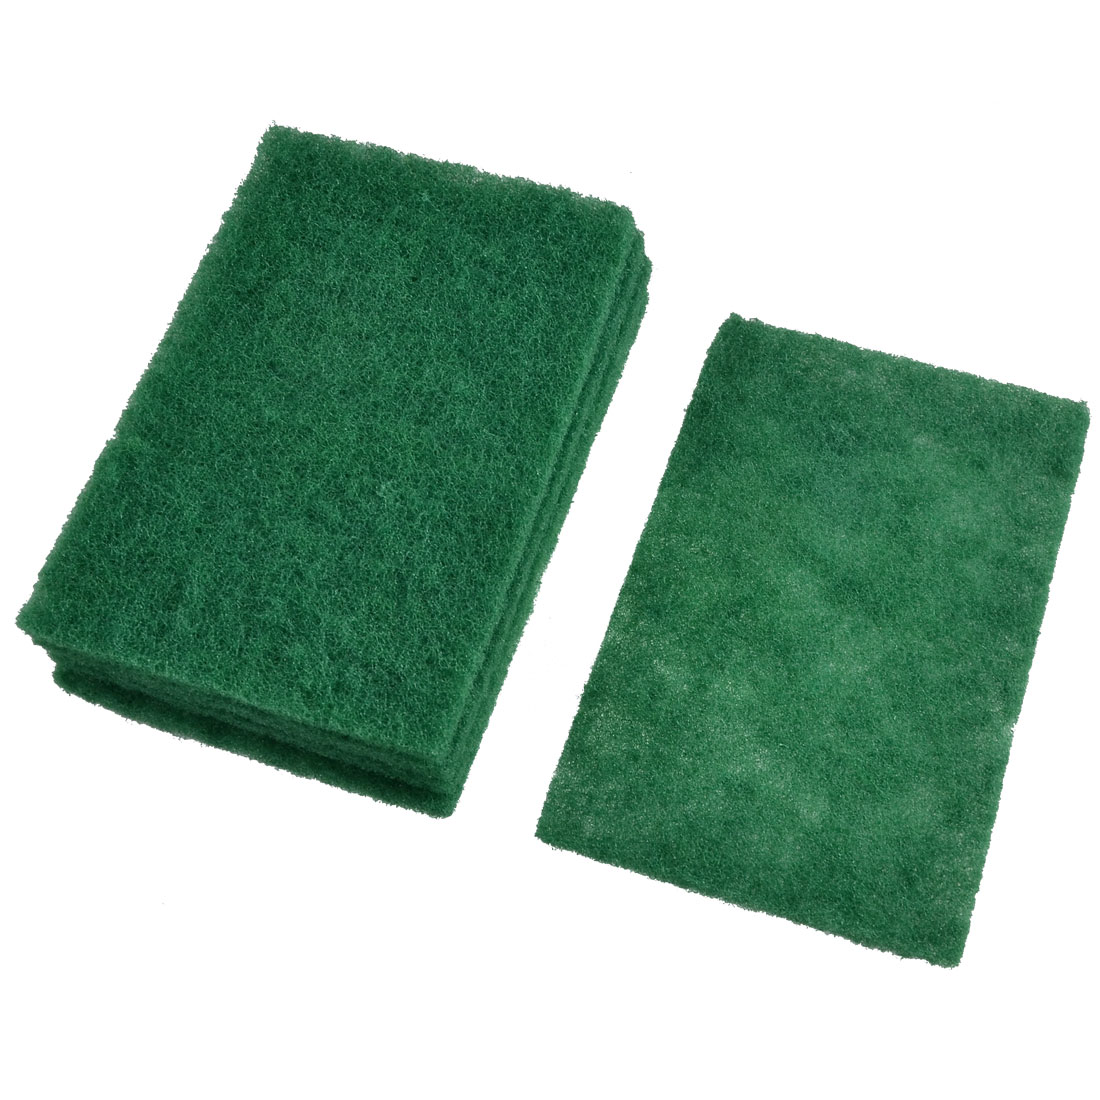 Kitchenware Rectangle Green Sponge Bowl Dish Scrub Cleaning Pad 5 Pcs